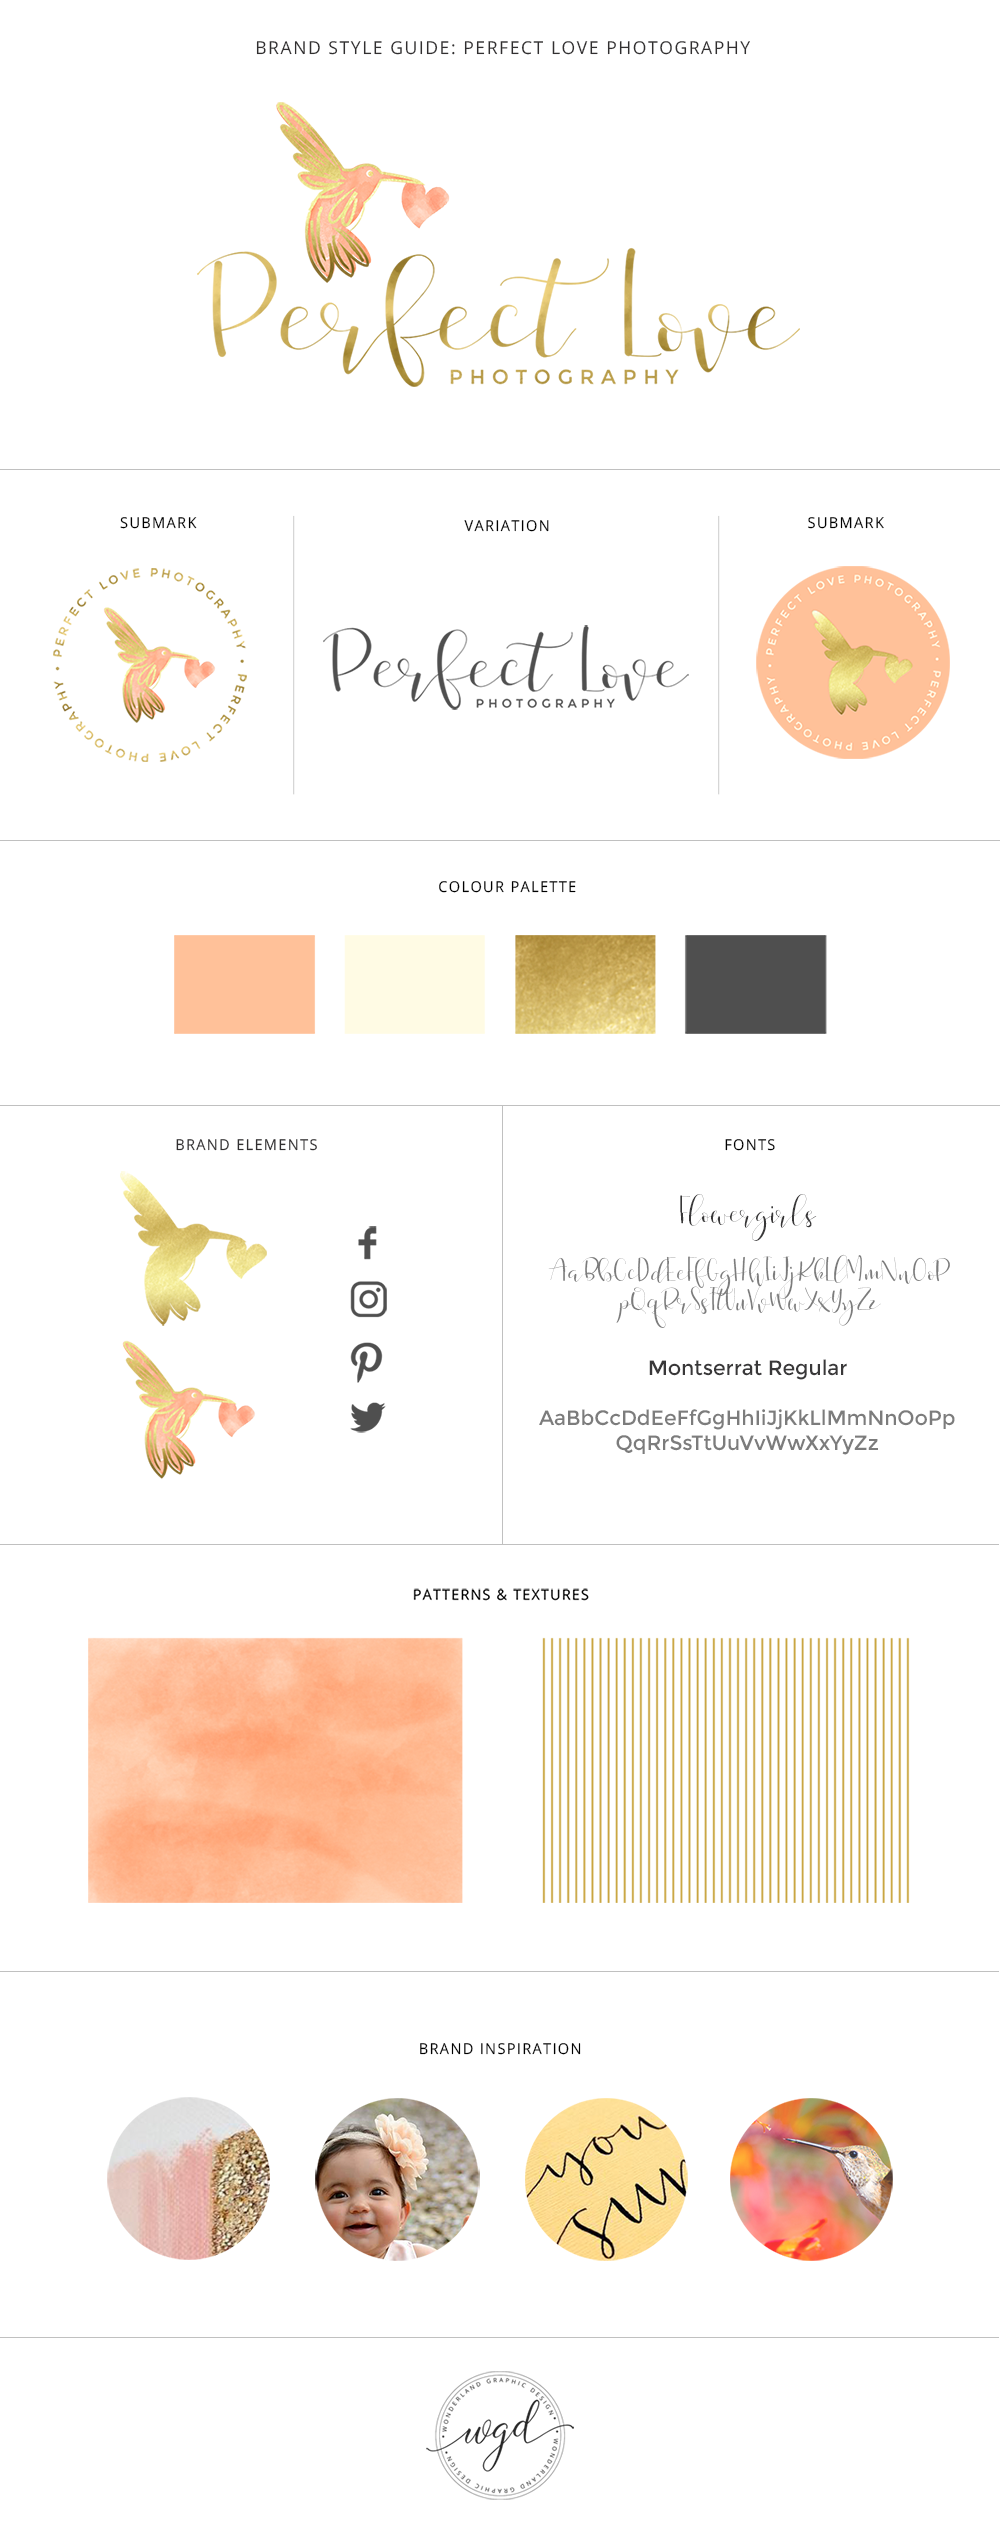 Brand board for Perfect Love Photography, brand style guide for the branding of children and family photographer including logo, submark, brand elements, beautiful script and sans serif fonts, warm feminine color palette of coral, peach, cream and gold, watercolor pattern and gold stripes. Branding for female entrepreneurs, business owners and bloggers. Click for mood board and social media branding!